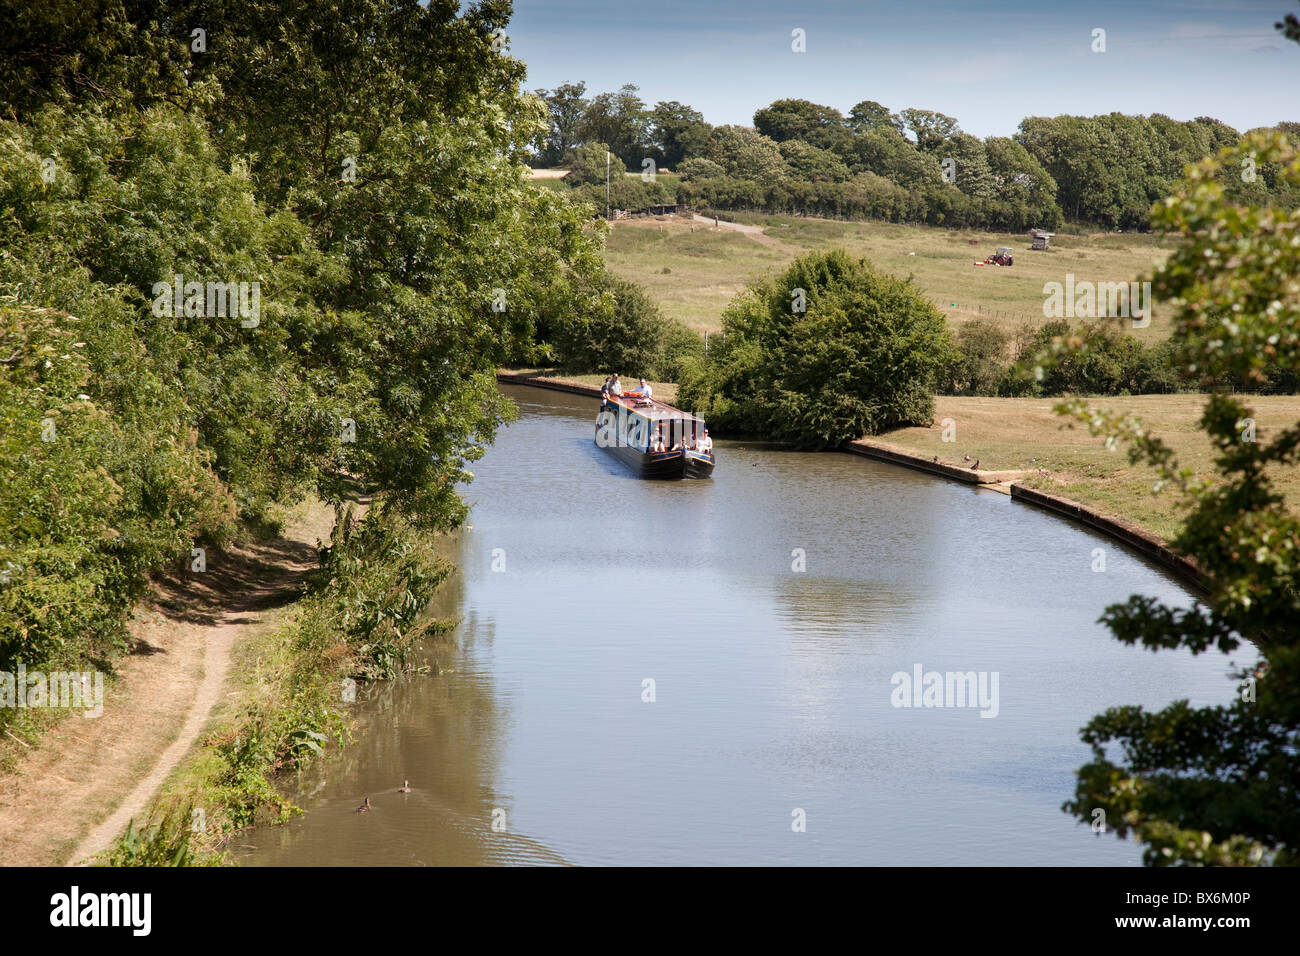 Oxford Canal England - Stock Image